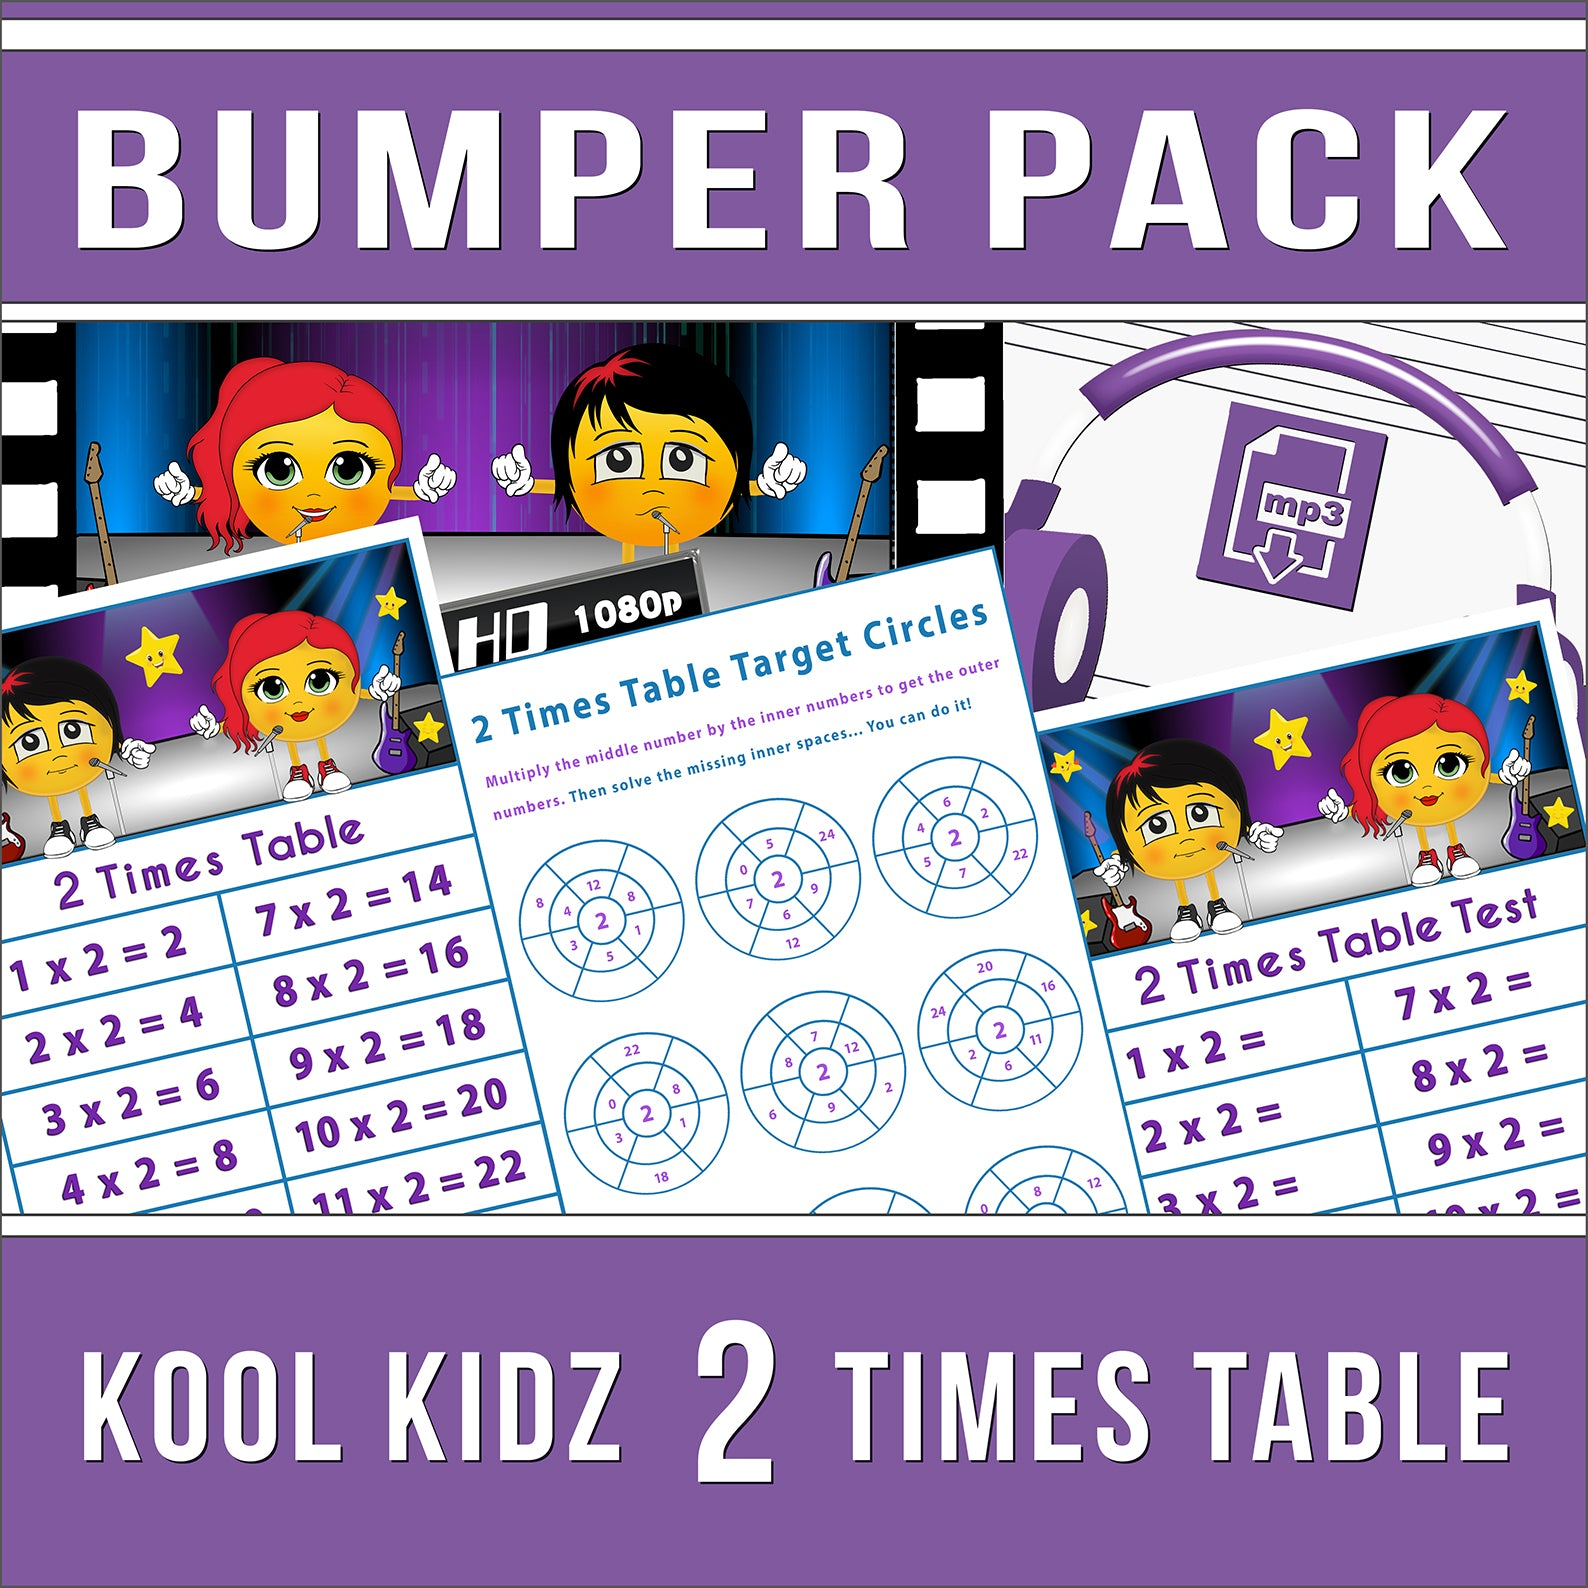 Kool Kidz 2 Times Table Bumper Pack